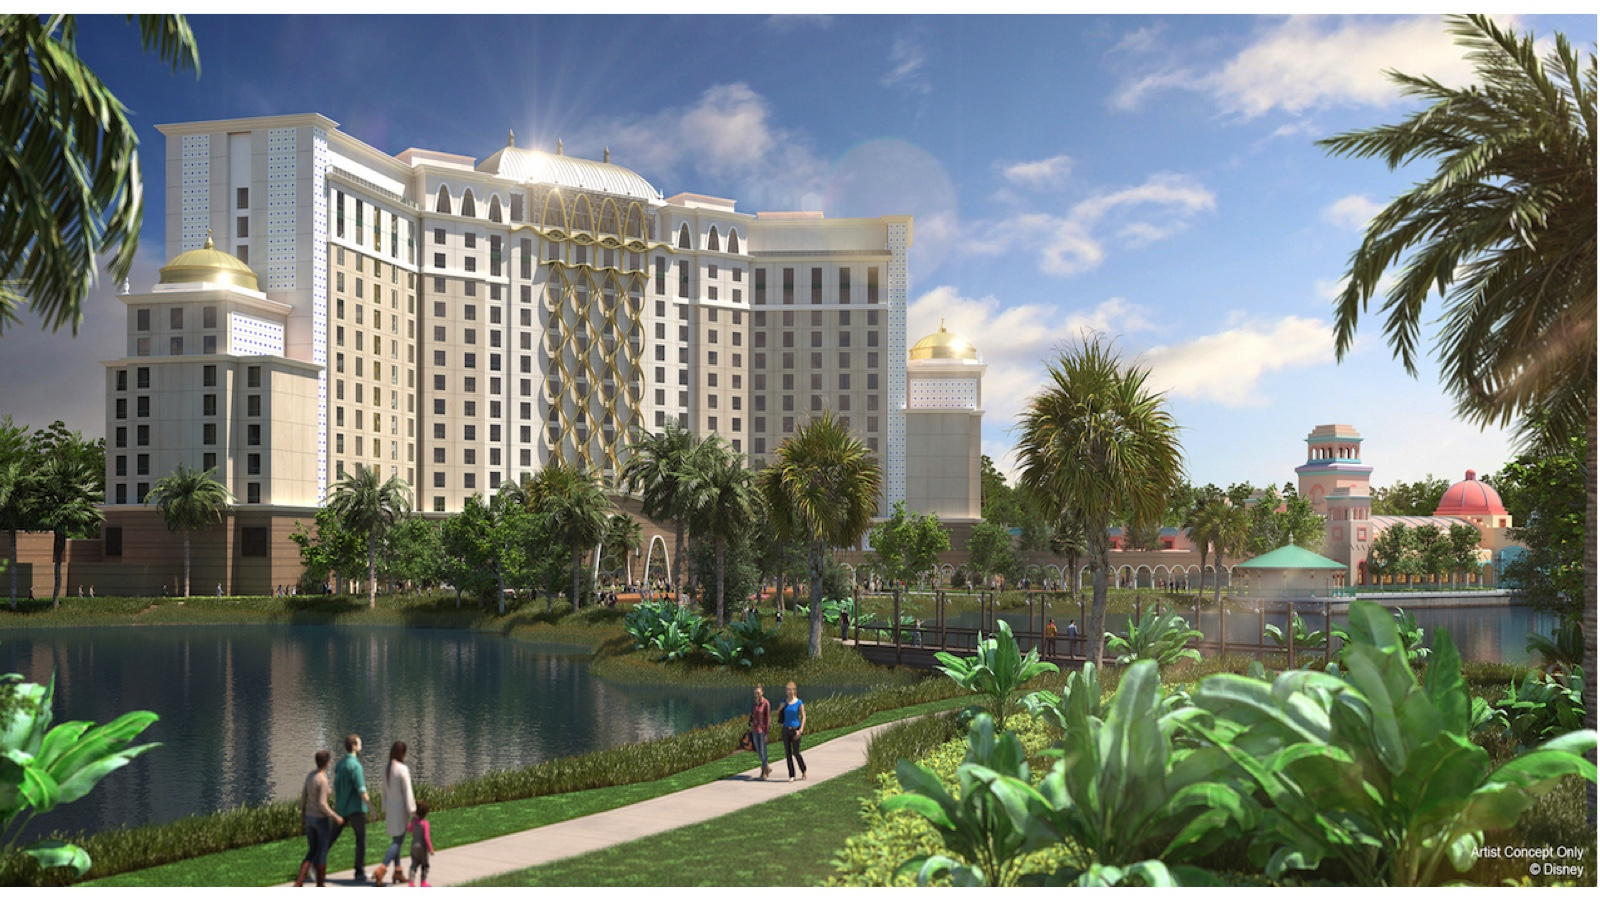 Photo of new Grand Destino Resort